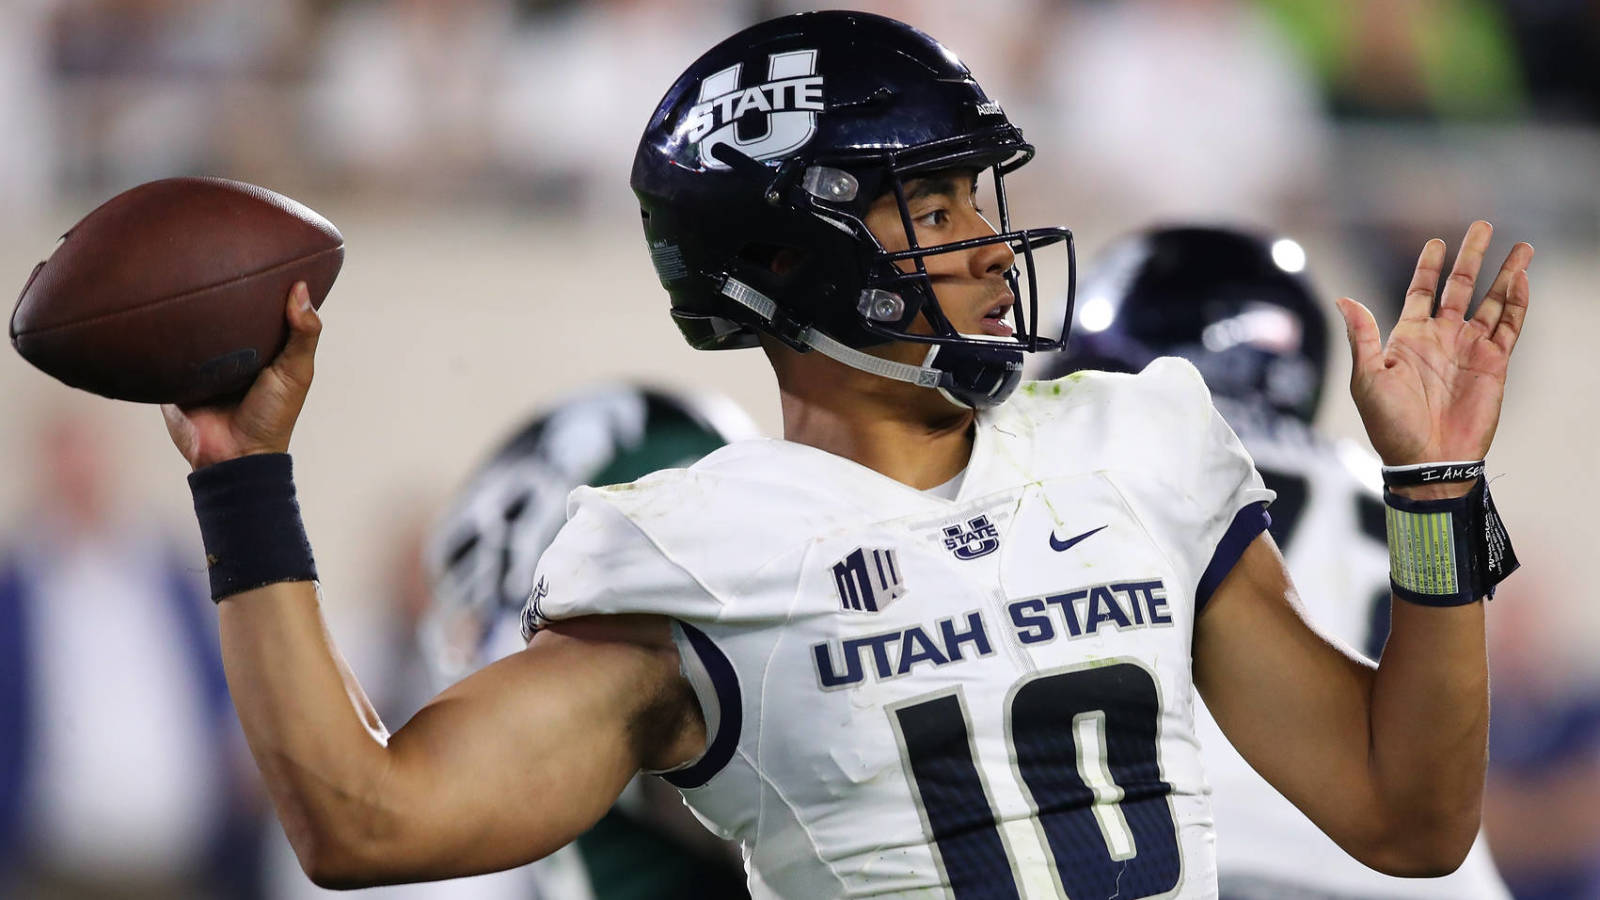 Small-school sleepers to watch at the NFL Combine